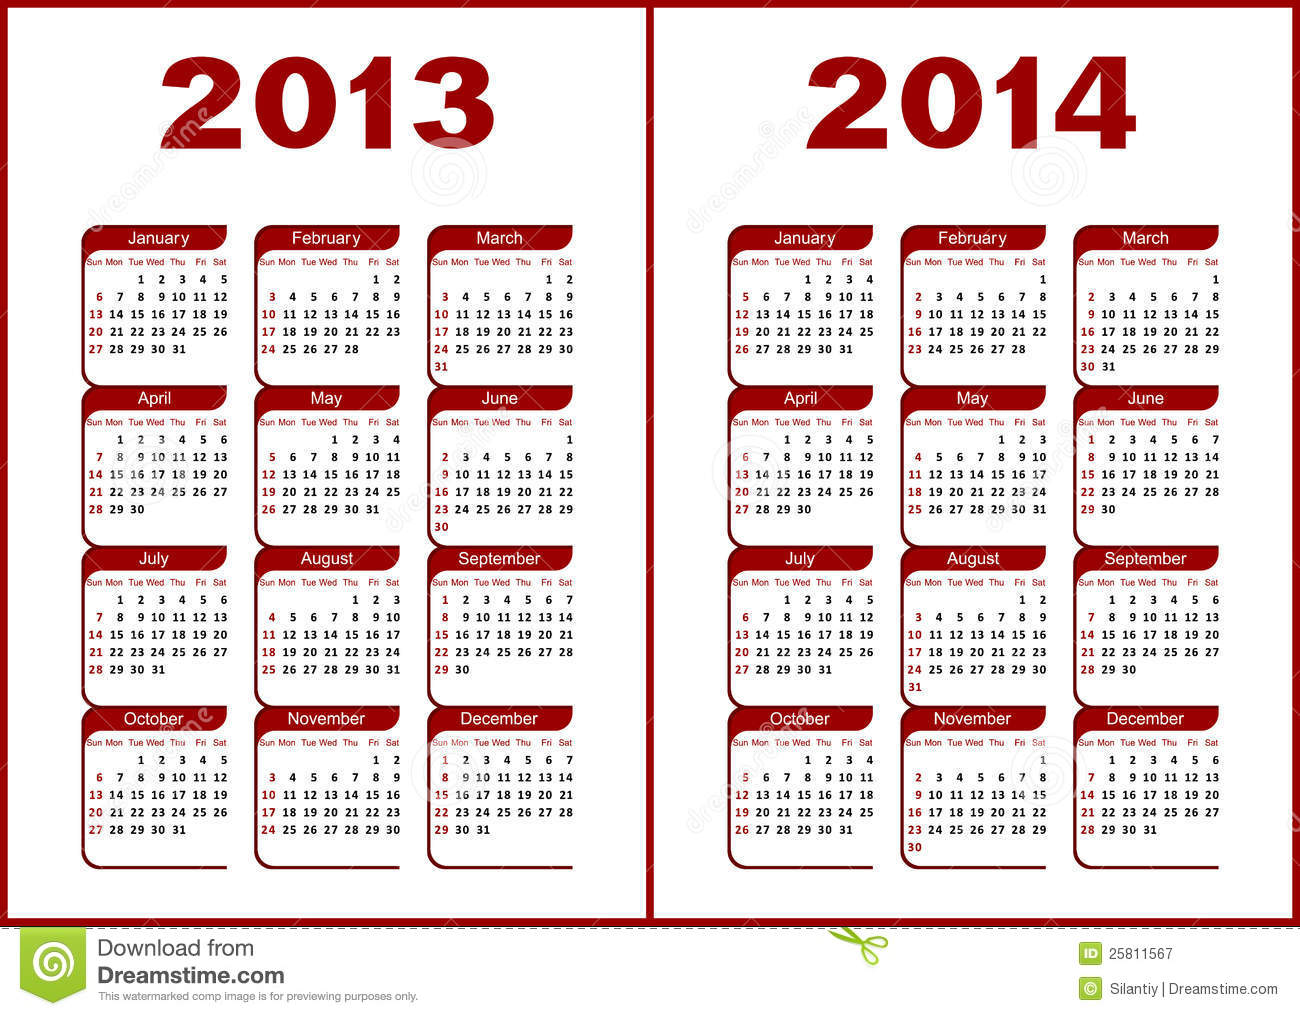 Calendar 2013,2014 Royalty Free Stock Photography - Image: 25811567